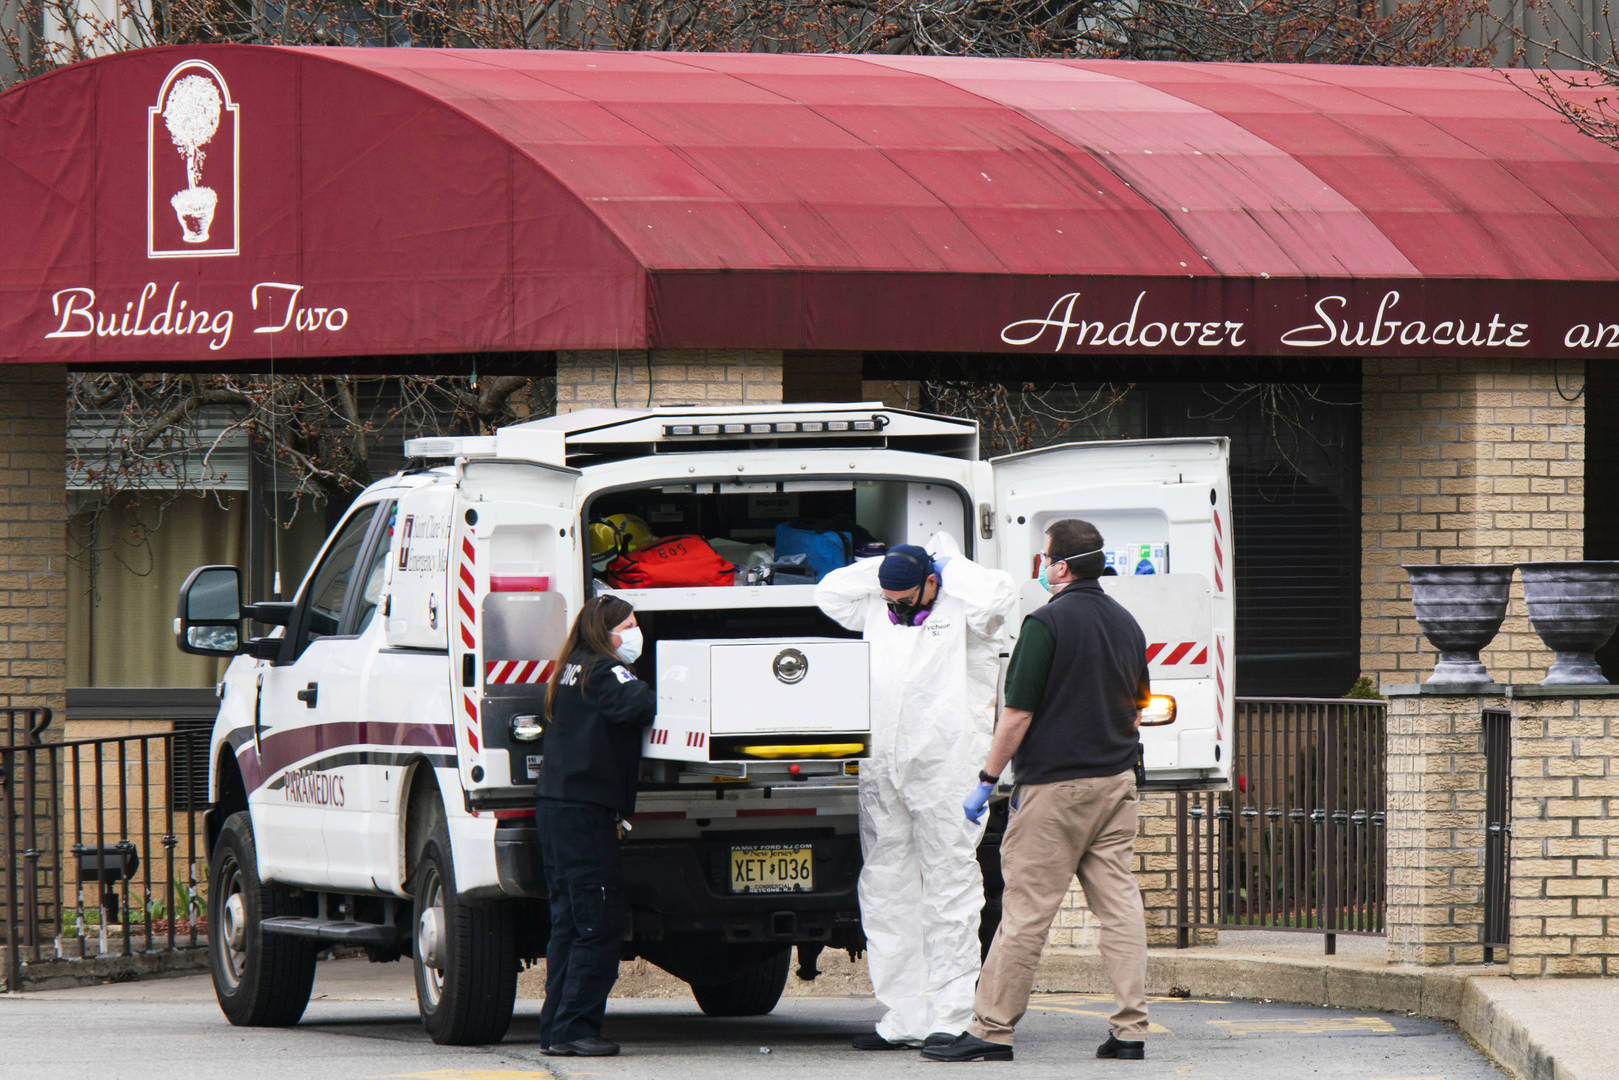 17 bodies found at Andover Subacute and Rehab center